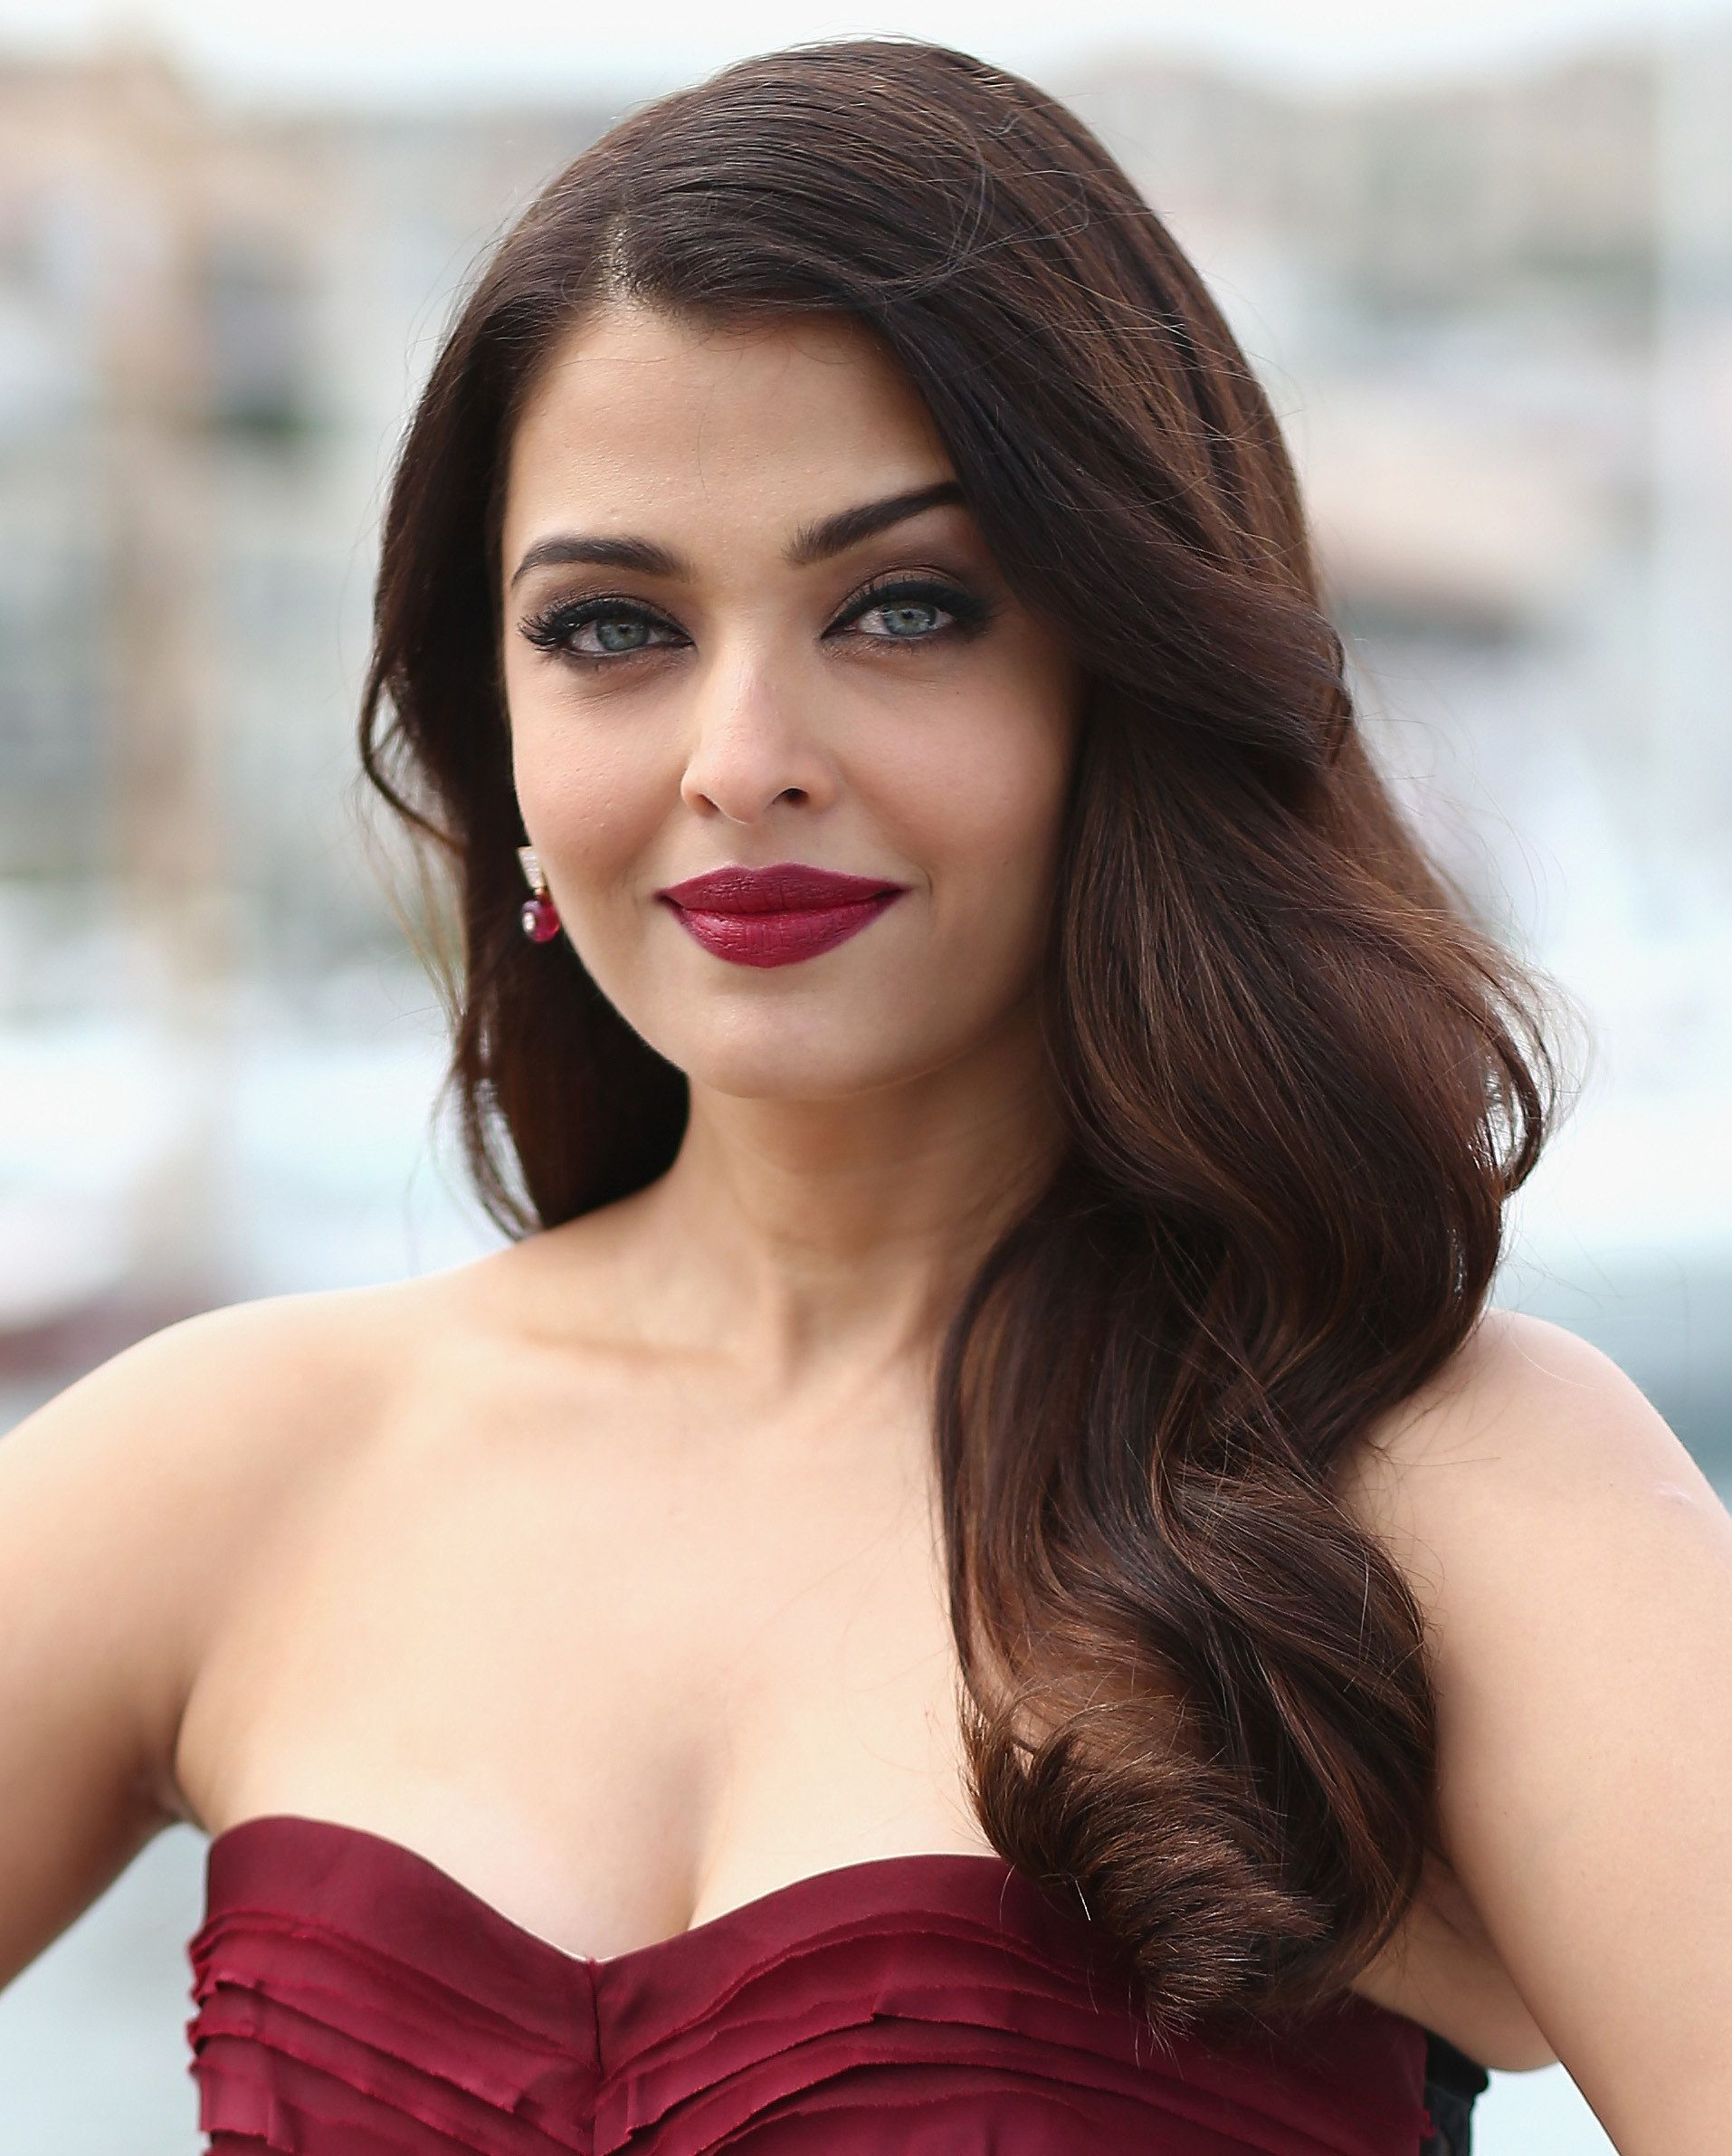 aishwarya rai bachchan facebookaishwarya rai bachchan vk, aishwarya rai bachchan kimdir, aishwarya rai bachchan dance performance, aishwarya rai bachchan filme, aishwarya rai bachchan family, aishwarya rai bachchan imdb, aishwarya rai bachchan interview, aishwarya rai bachchan home video, aishwarya rai bachchan songs, aishwarya rai bachchan instagram, aishwarya rai bachchan biografia, aishwarya rai bachchan films, aishwarya rai bachchan official instagram, aishwarya rai bachchan wikipedia, aishwarya rai bachchan filmleri, aishwarya rai bachchan daughter, aishwarya rai bachchan facebook, aishwarya rai bachchan facebook official, aishwarya rai bachchan youtube, aishwarya rai bachchan illuminati